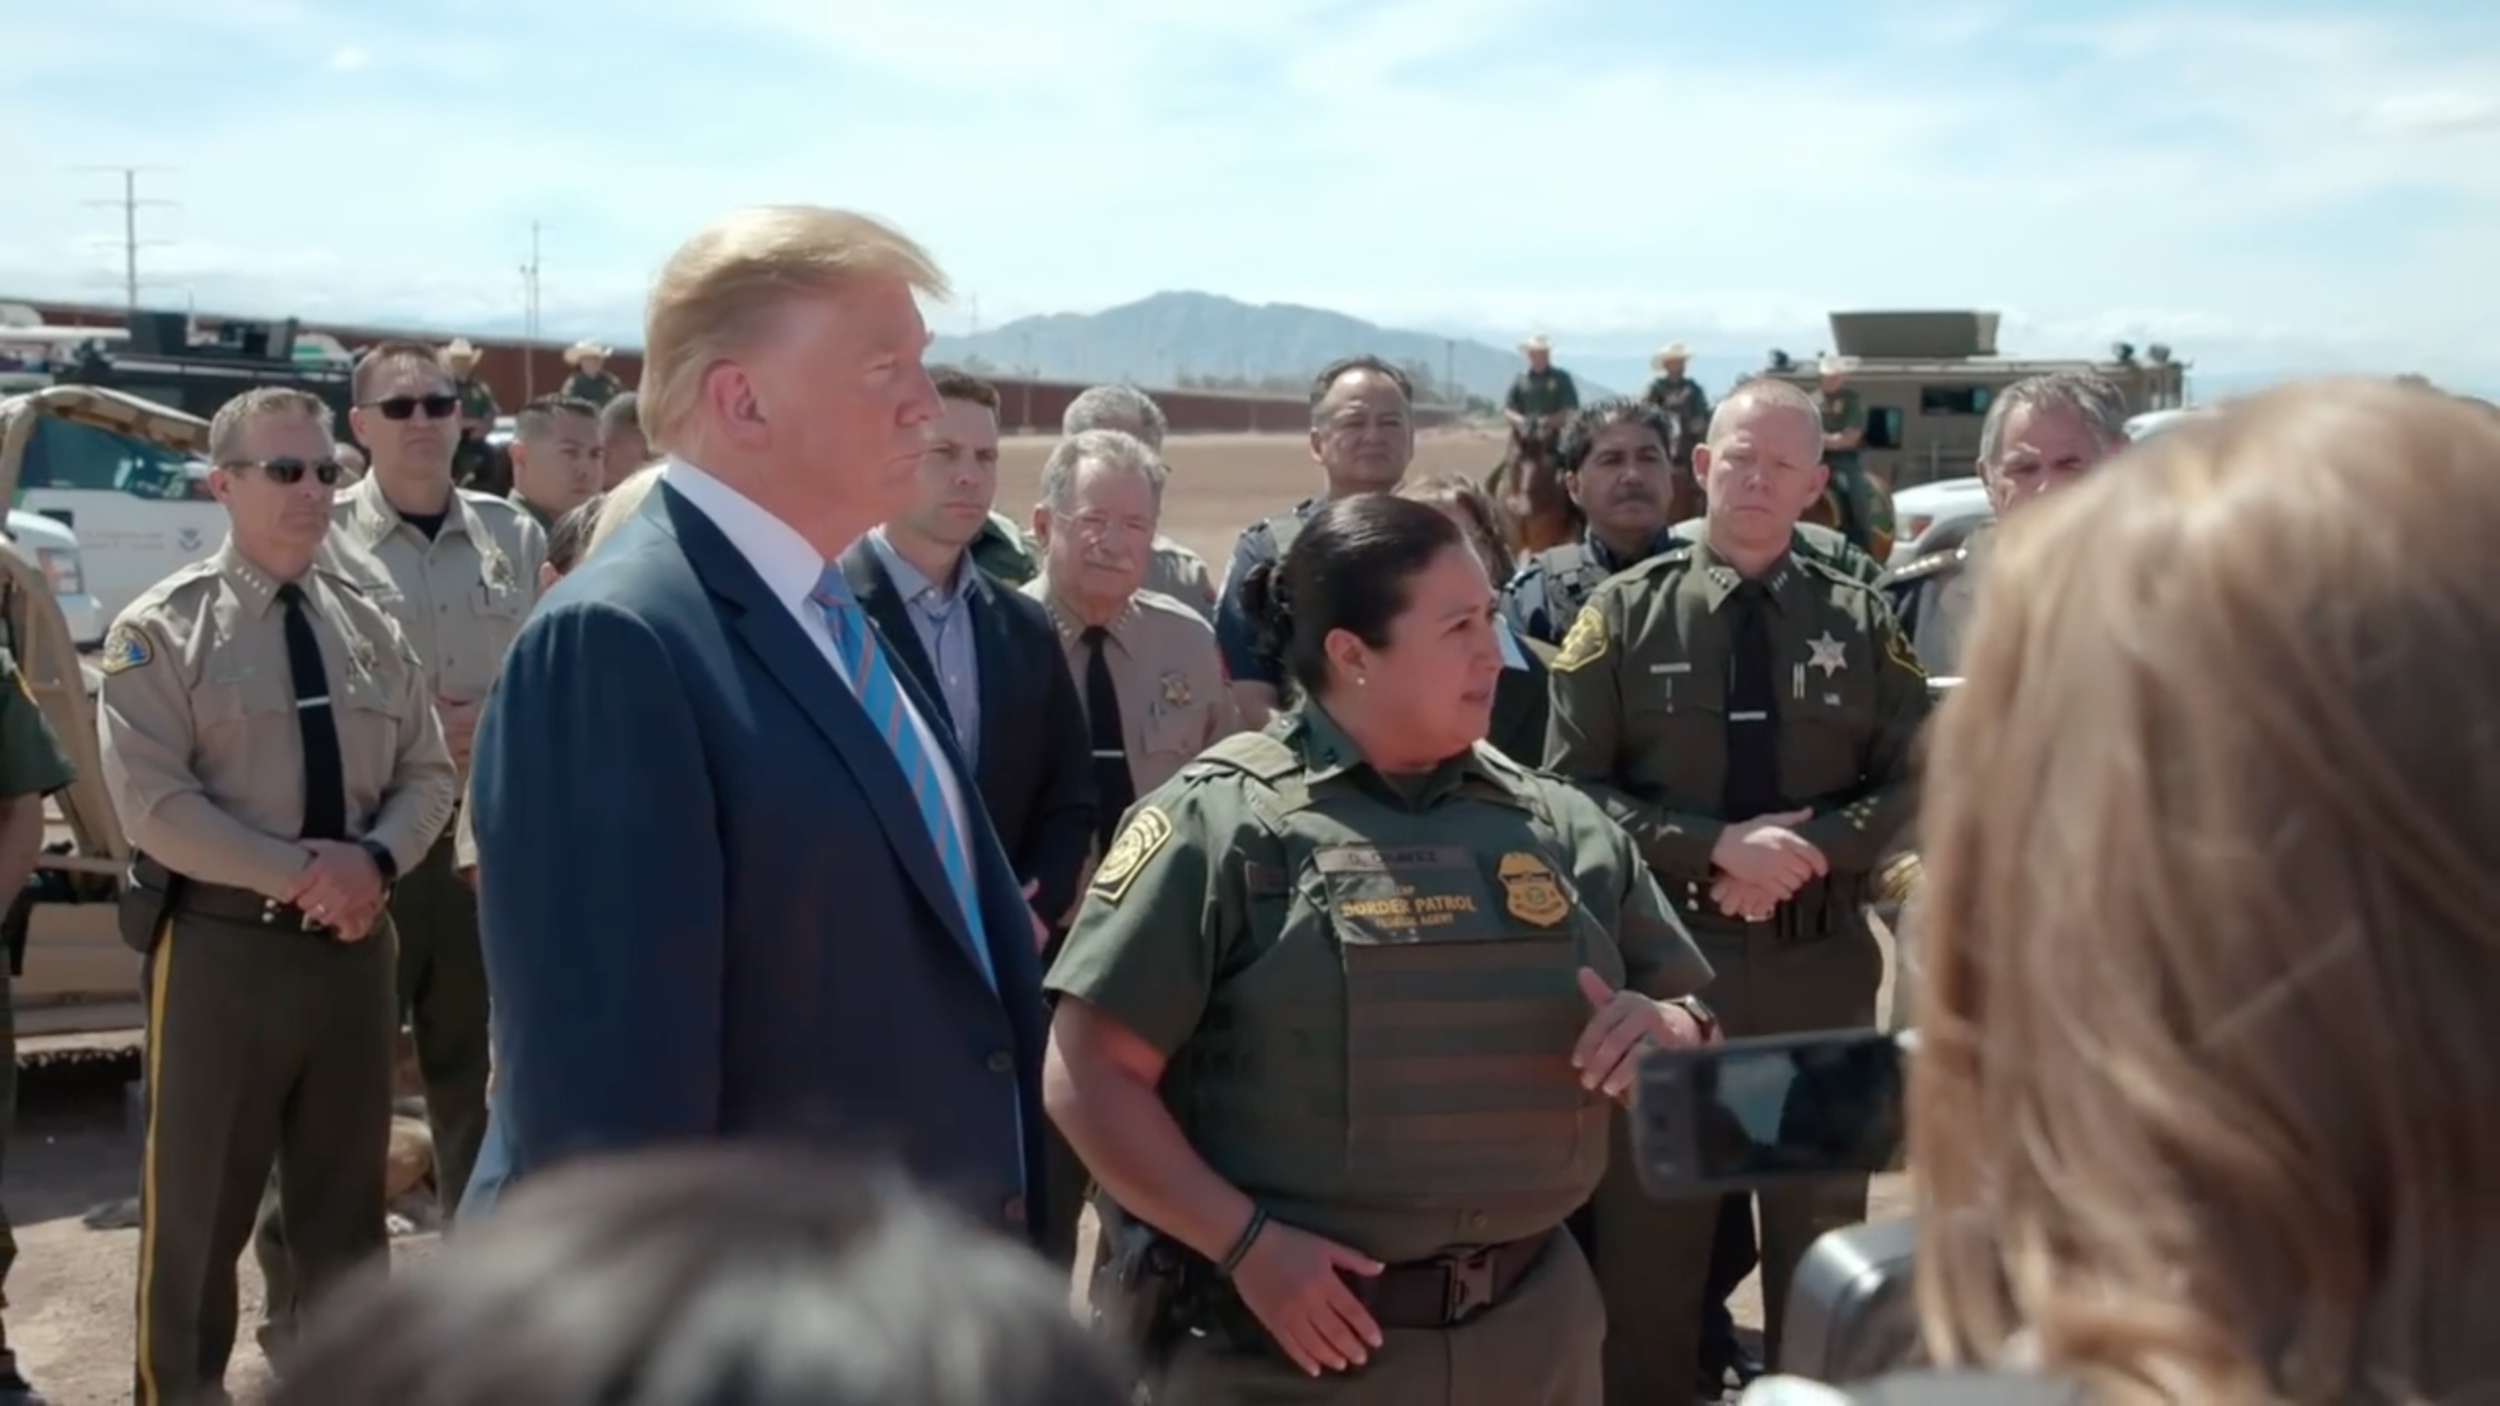 ( The White House on YouTube ) President Trump Visits the Border Wall in Calexico, California